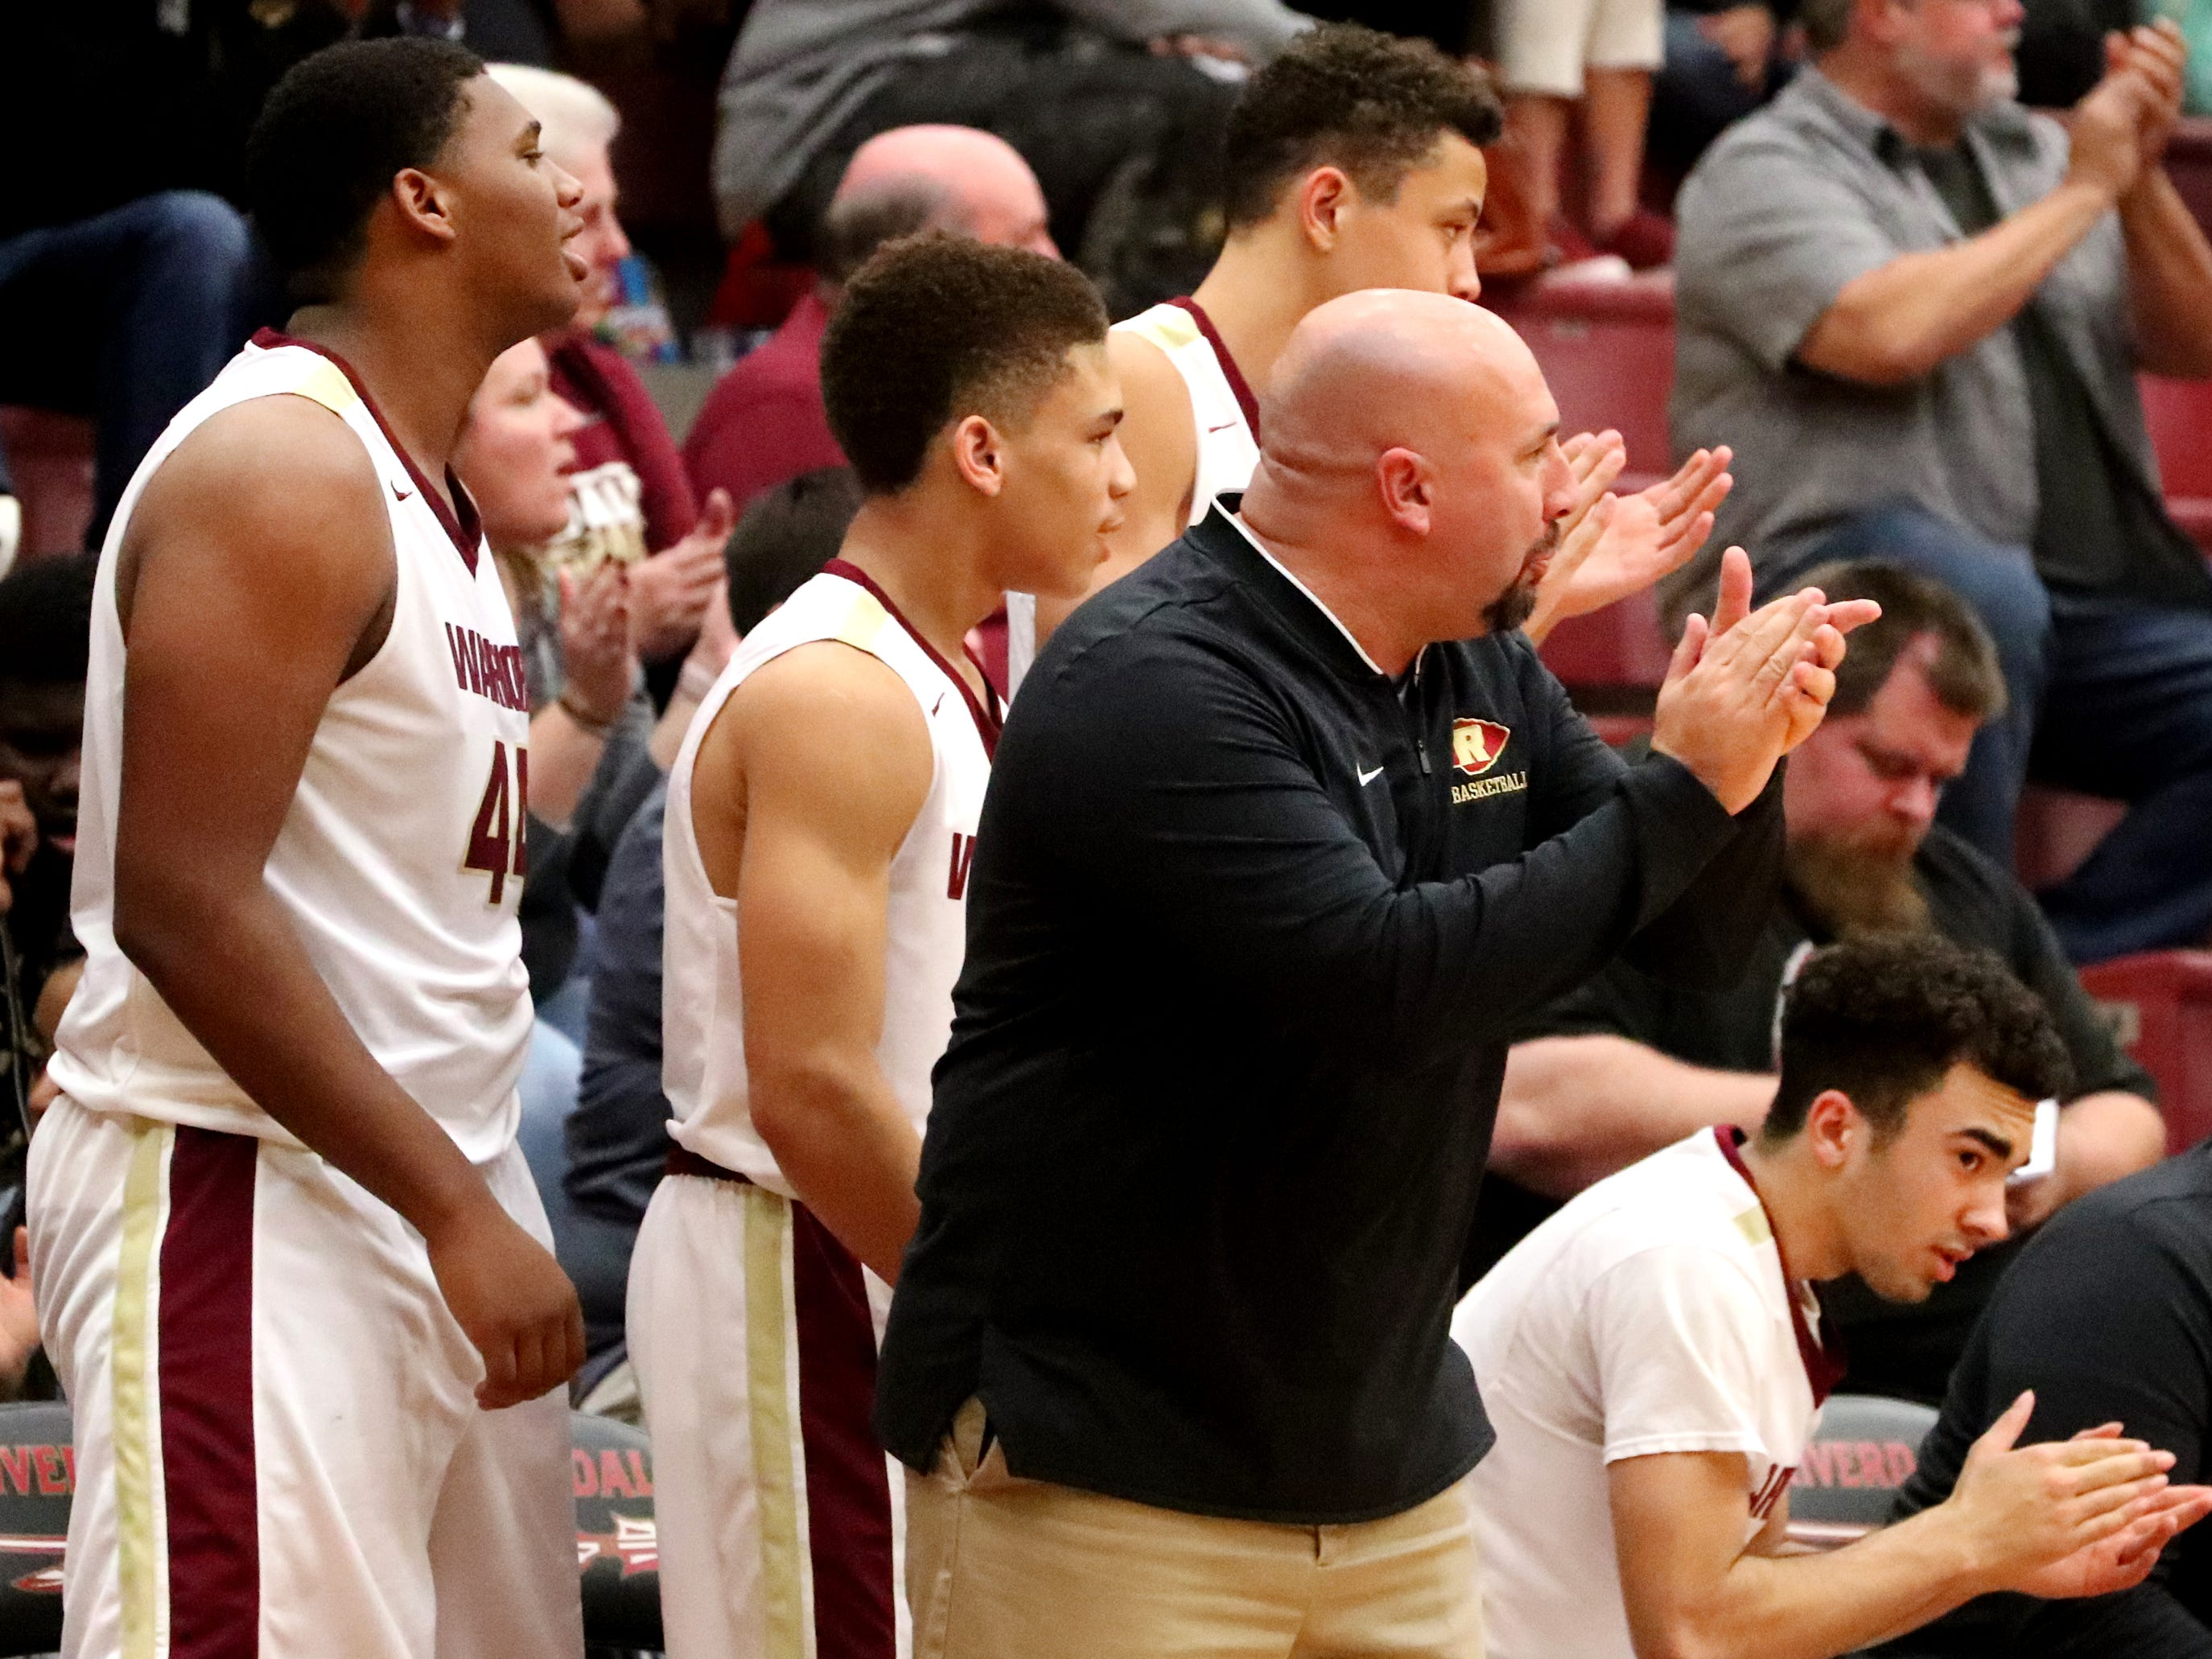 RiverdaleÕs Boys Head Coach Michael Voss cheers on his team from the sidelines with other players during the game against Lebaon, on Friday, Nov. 30, 2018.